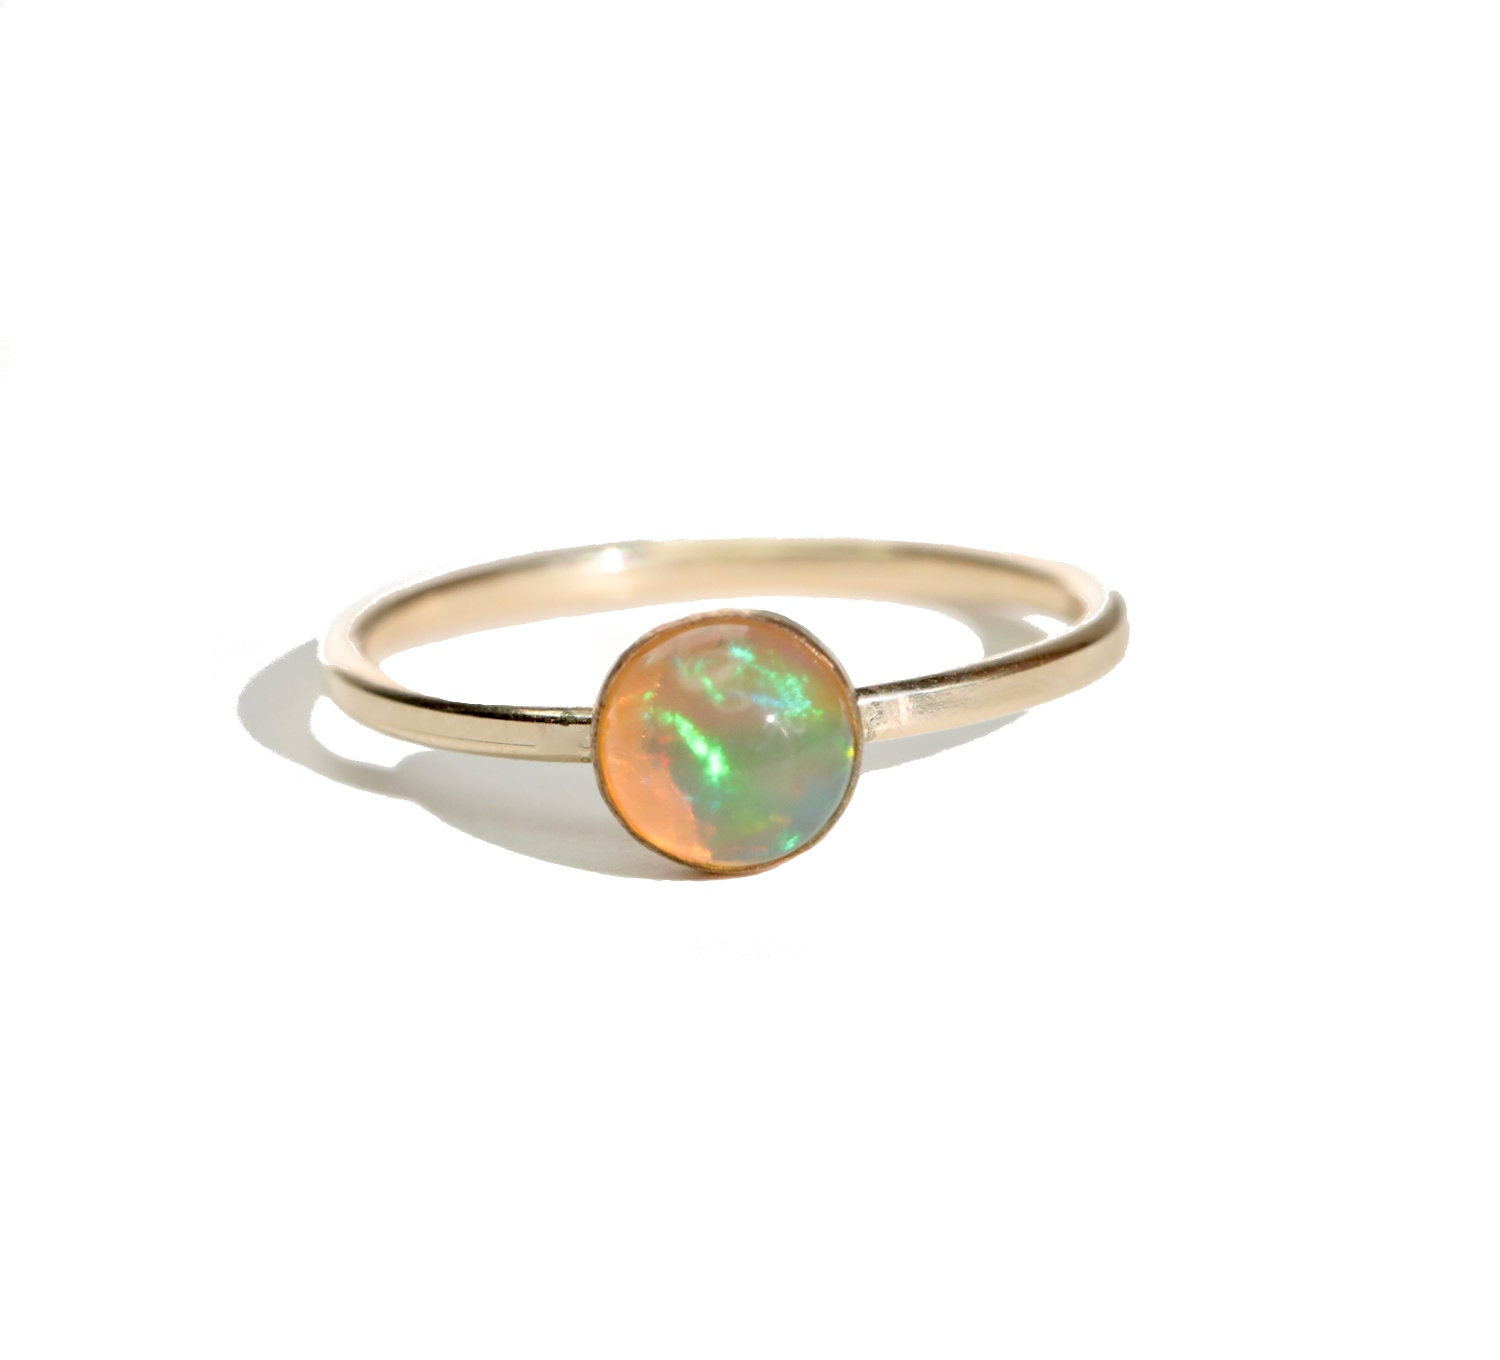 a805865d5 Semi-Black Ethiopian Opal Gemstone Ring 14k gold filled October birthday October  birthstone gift for her 6mm gemstone size 7 ring solitaire